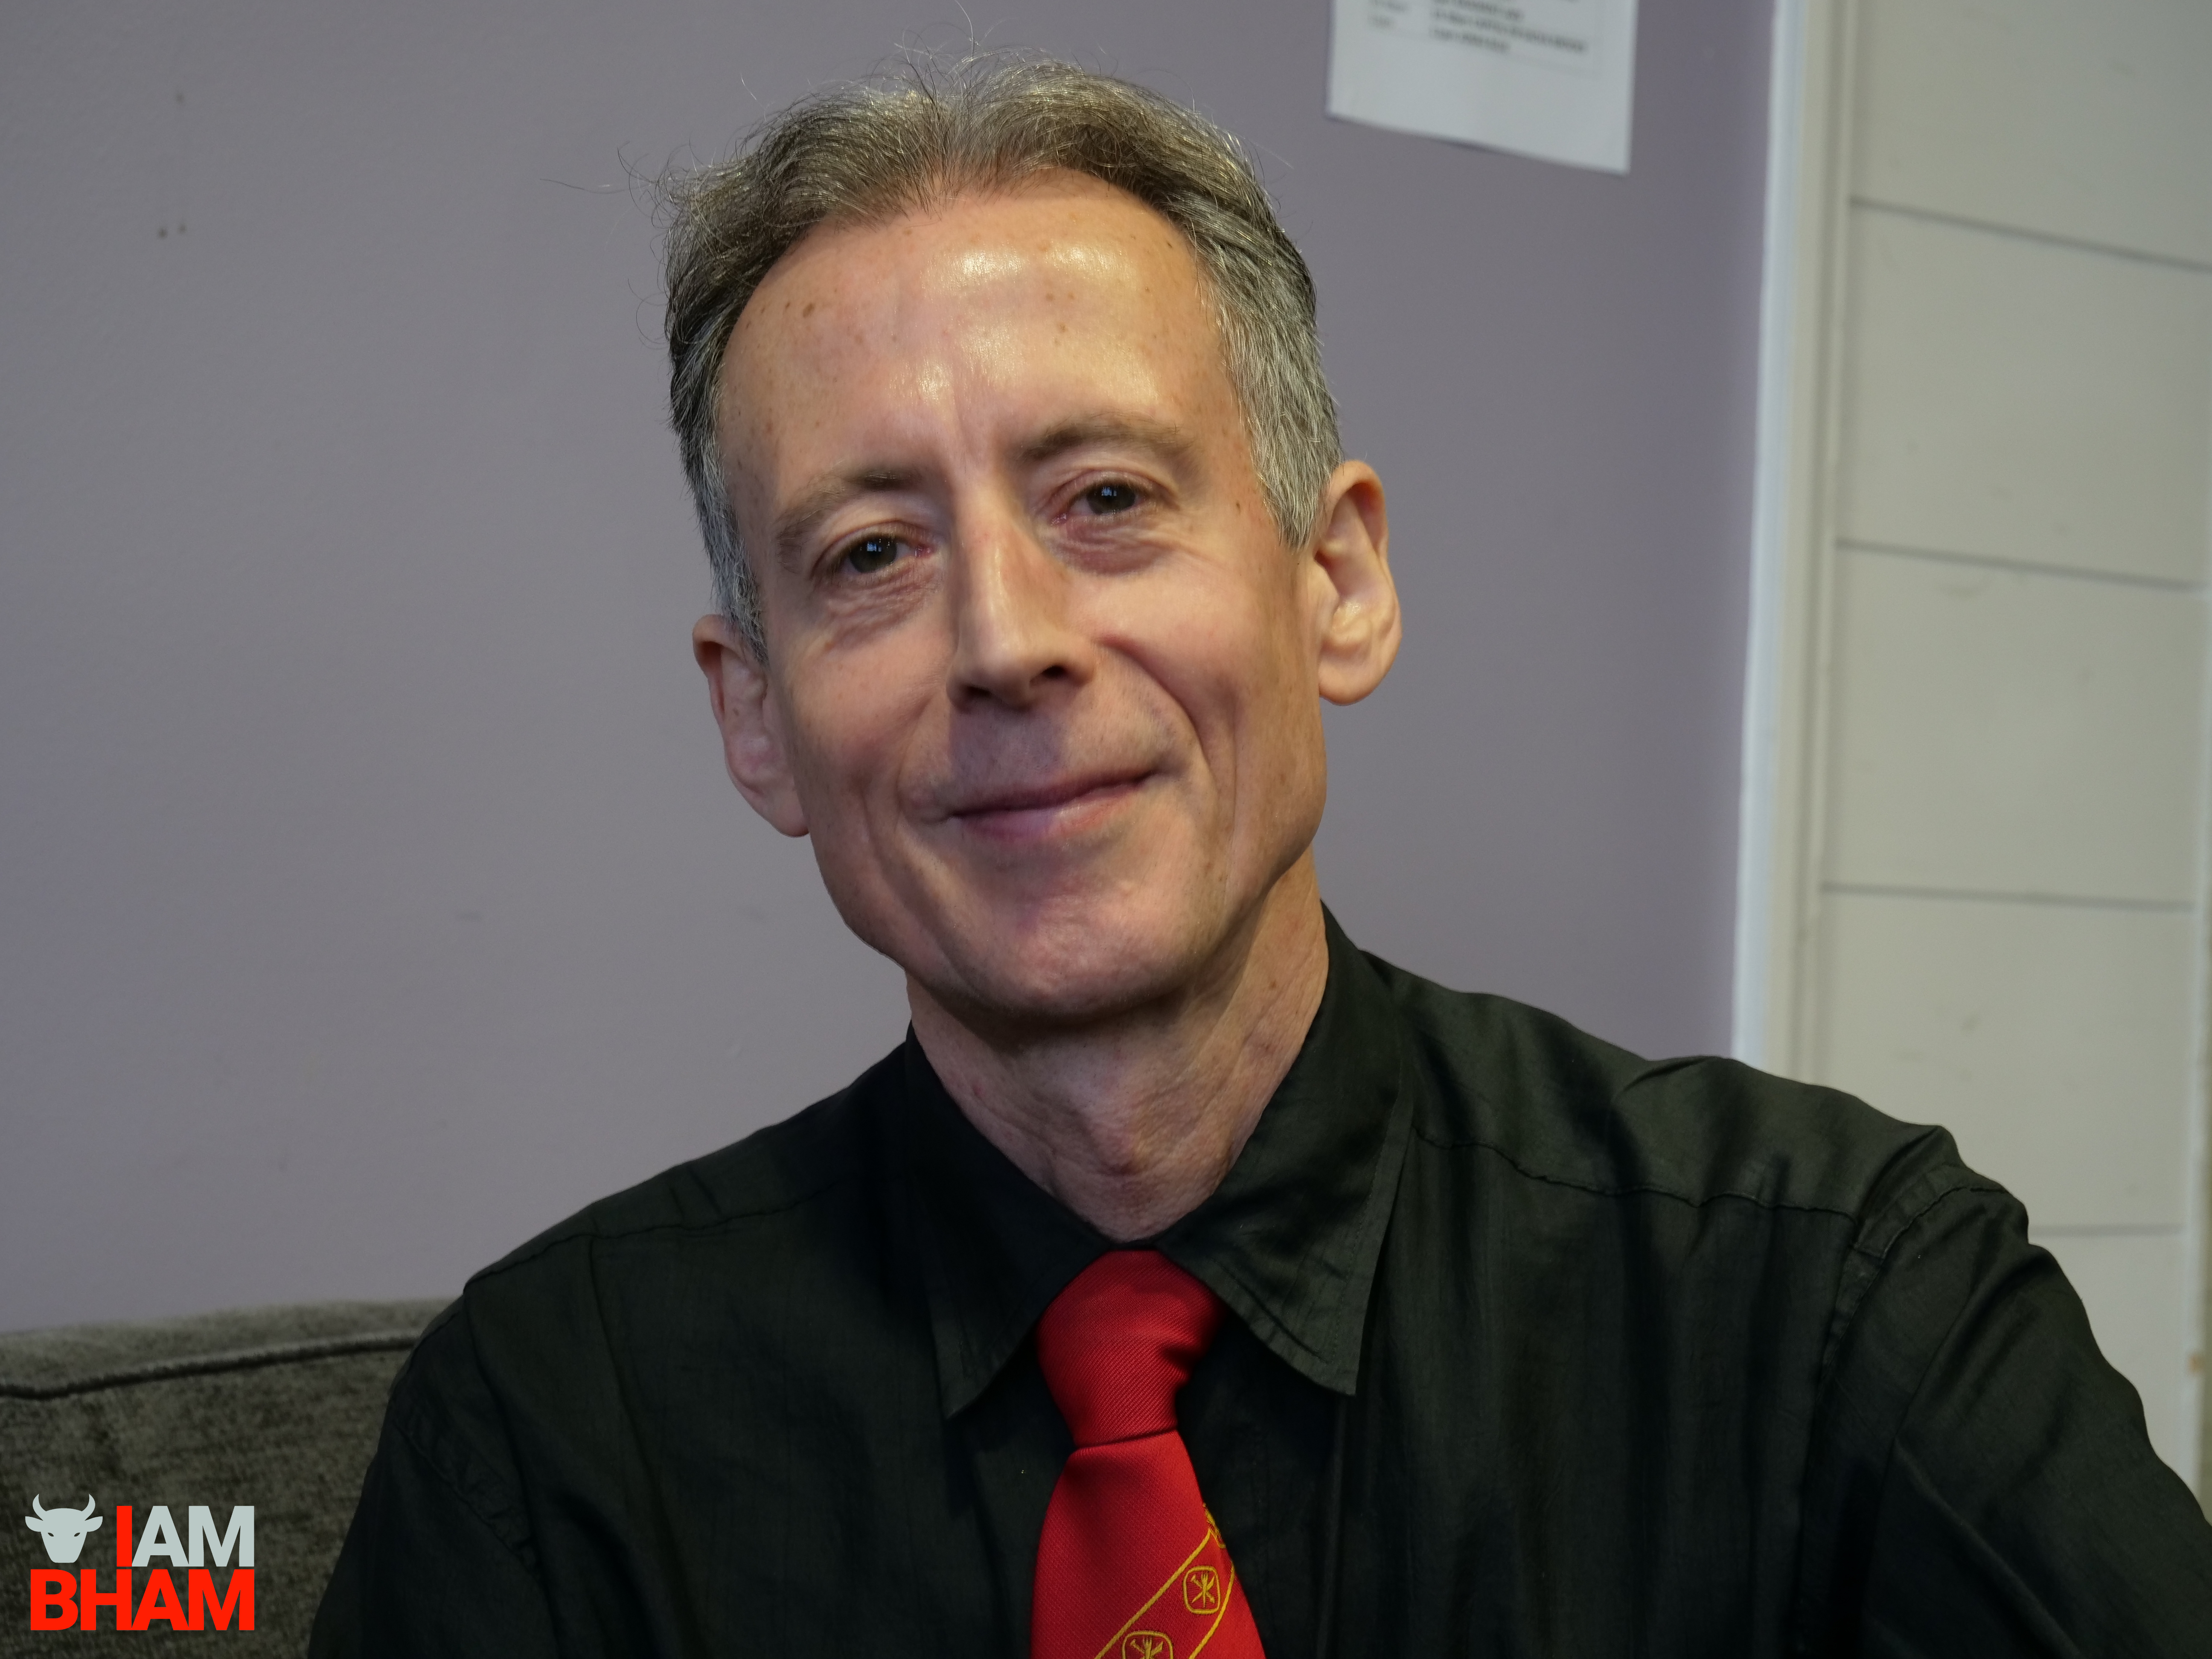 Peter Tatchell will be attending Queer Question Time in Birmingham